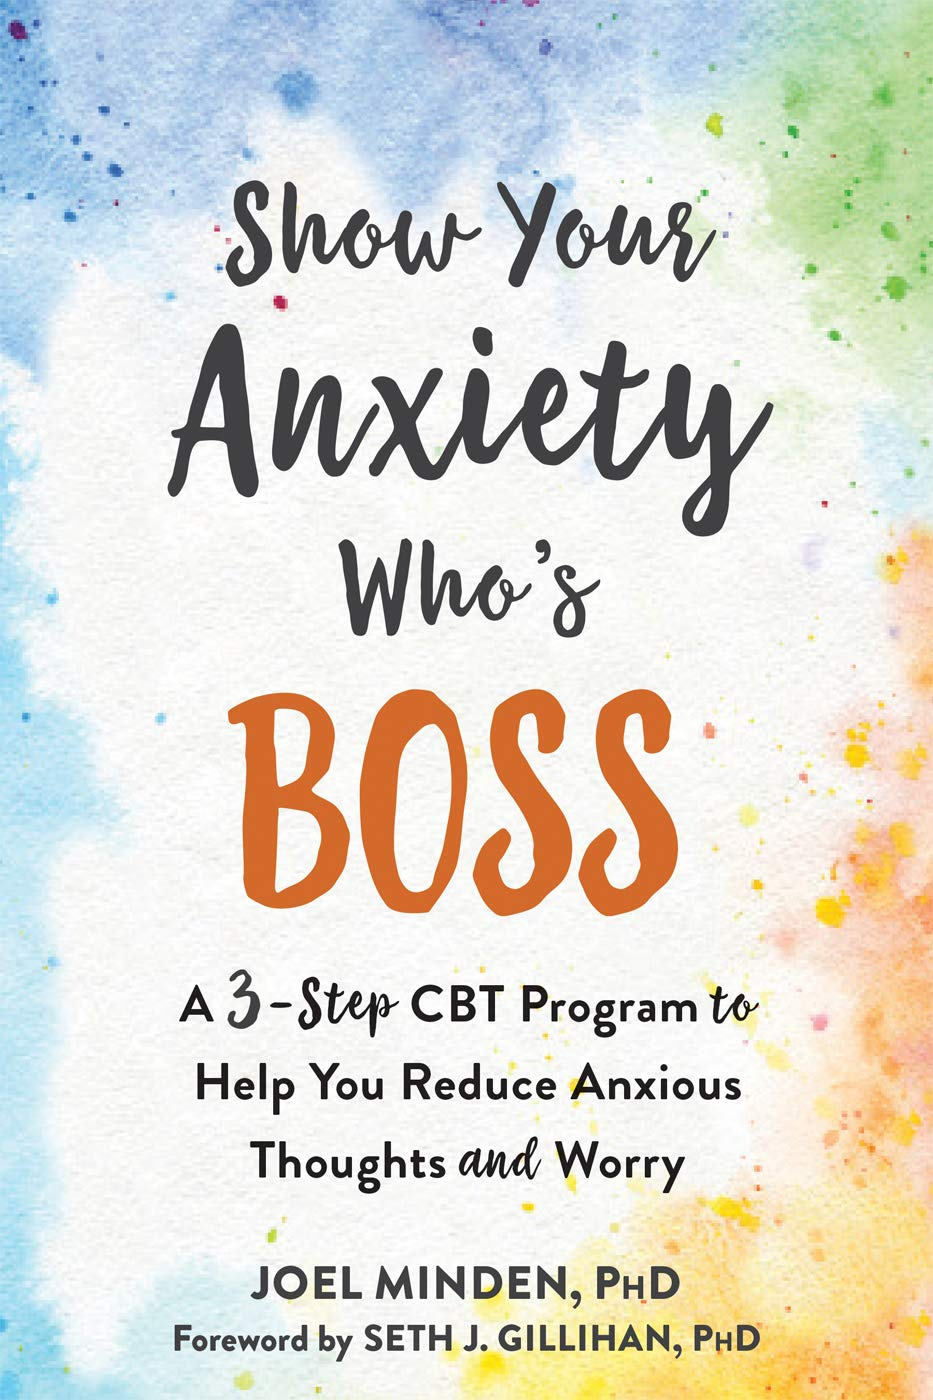 Show Your Anxiety Who's Boss - Joel Minden, PhD